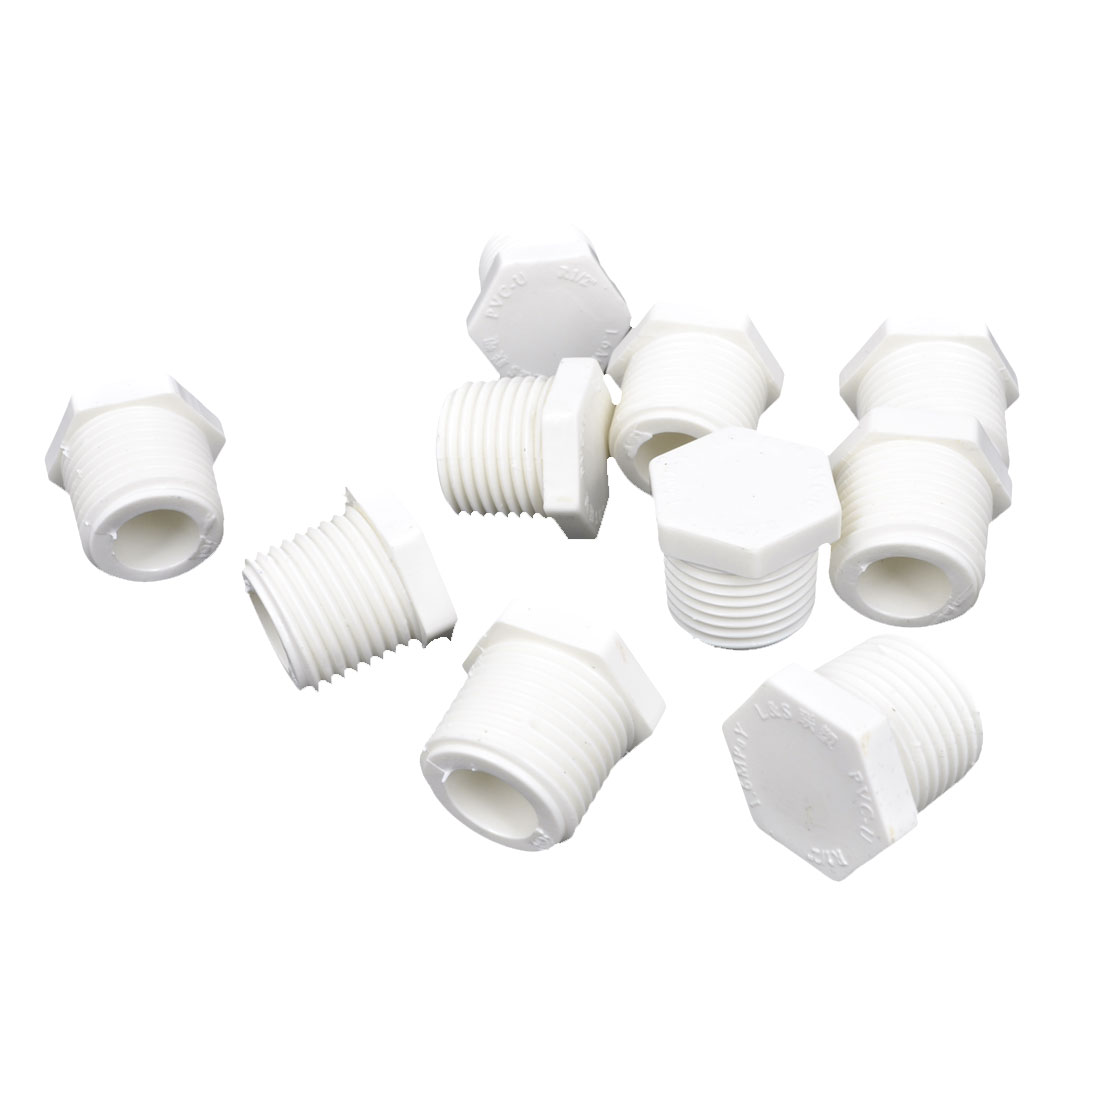 10 Pcs 1/2 PT Thread White Plastic Hex Head Screwed Pipe Plug Fitting for Water Pipeline